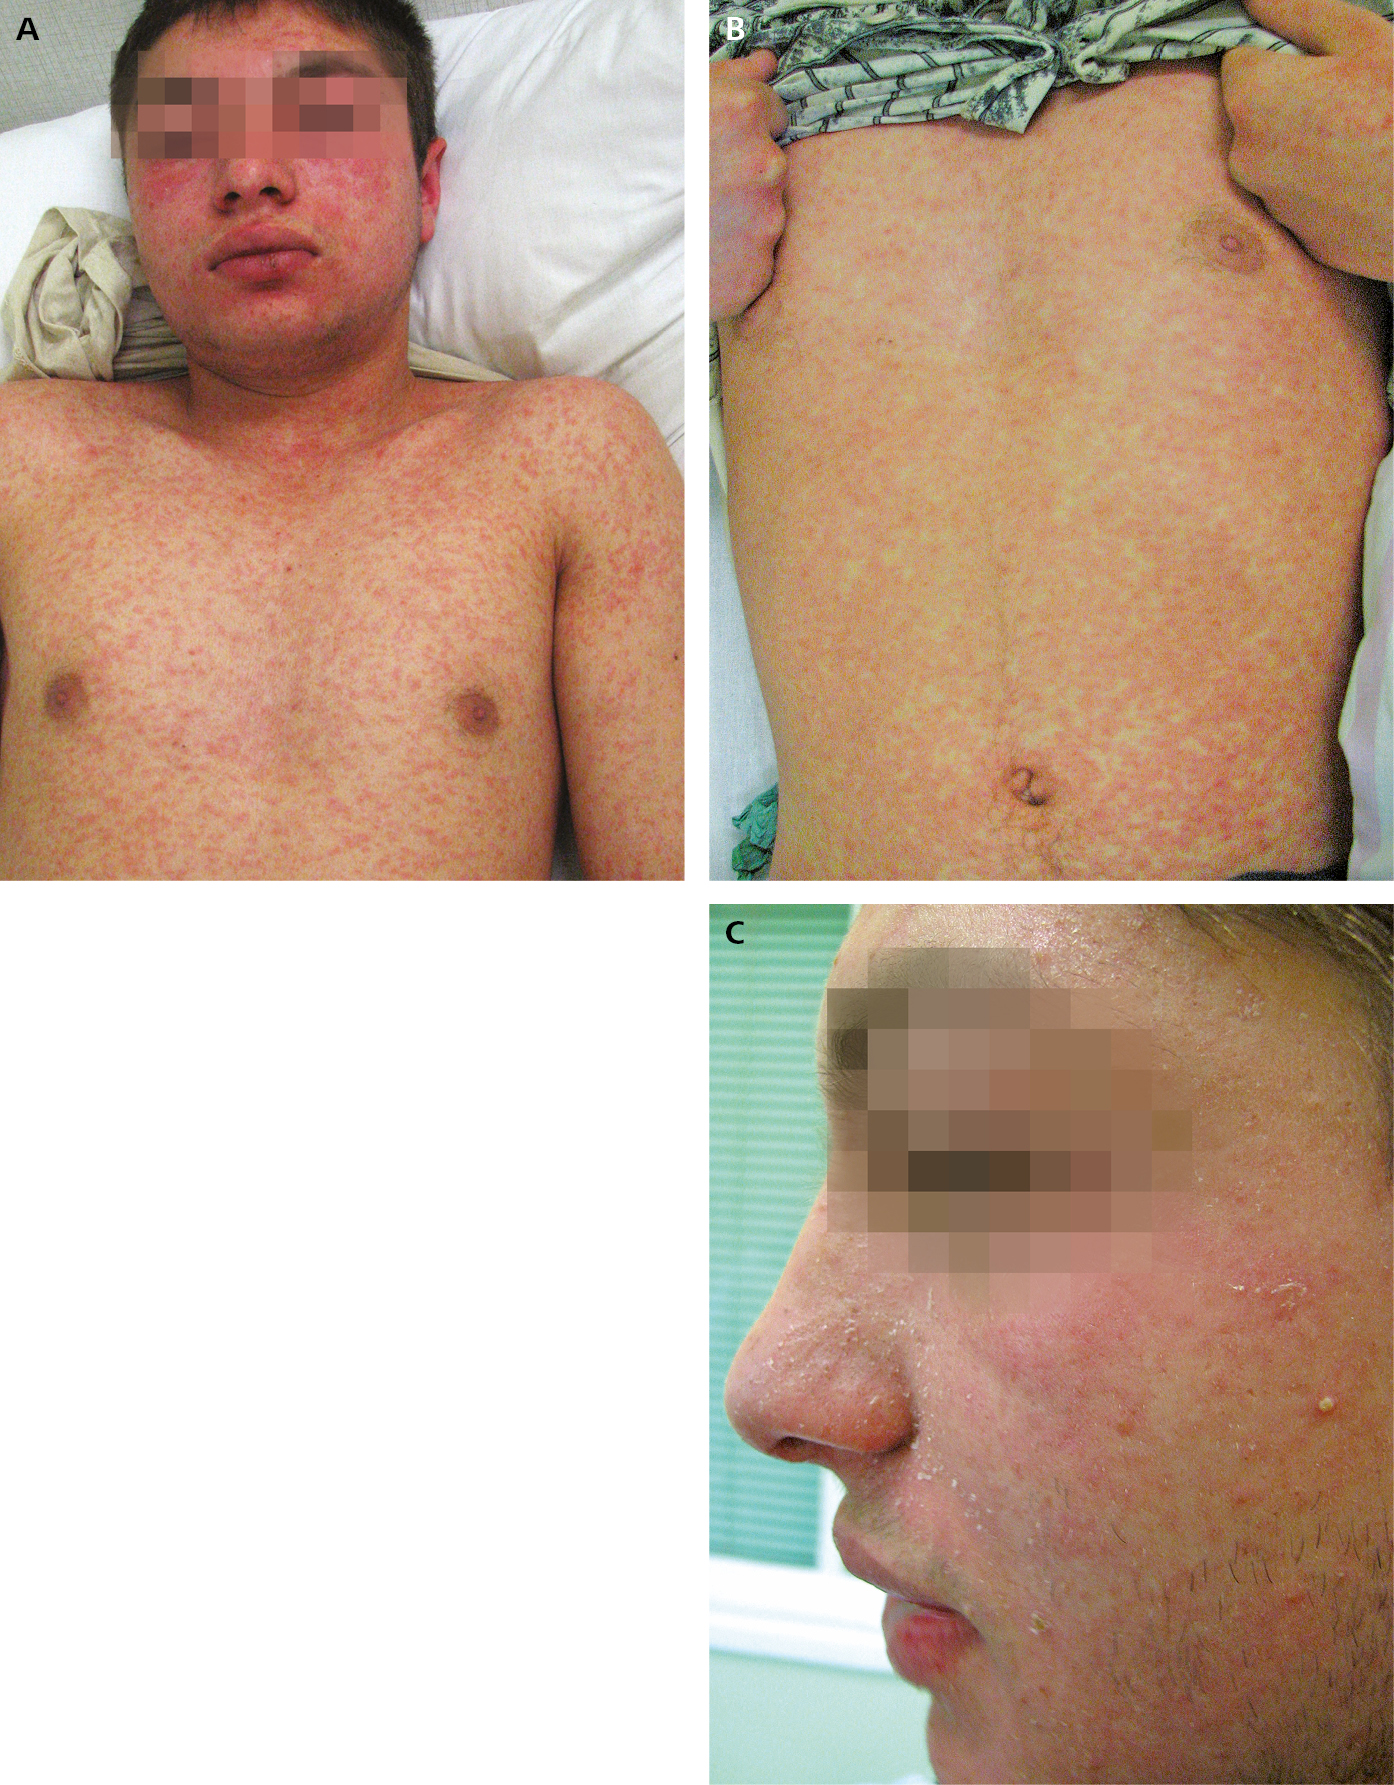 Figure 031_2_7651.  Measles.  A , eruptions on the face and trunk on day 2 after the onset of rash.  B , eruptions on the trunk on day 3 after the onset of rash.  C , bran-like desquamation on the face following resolution of rash.